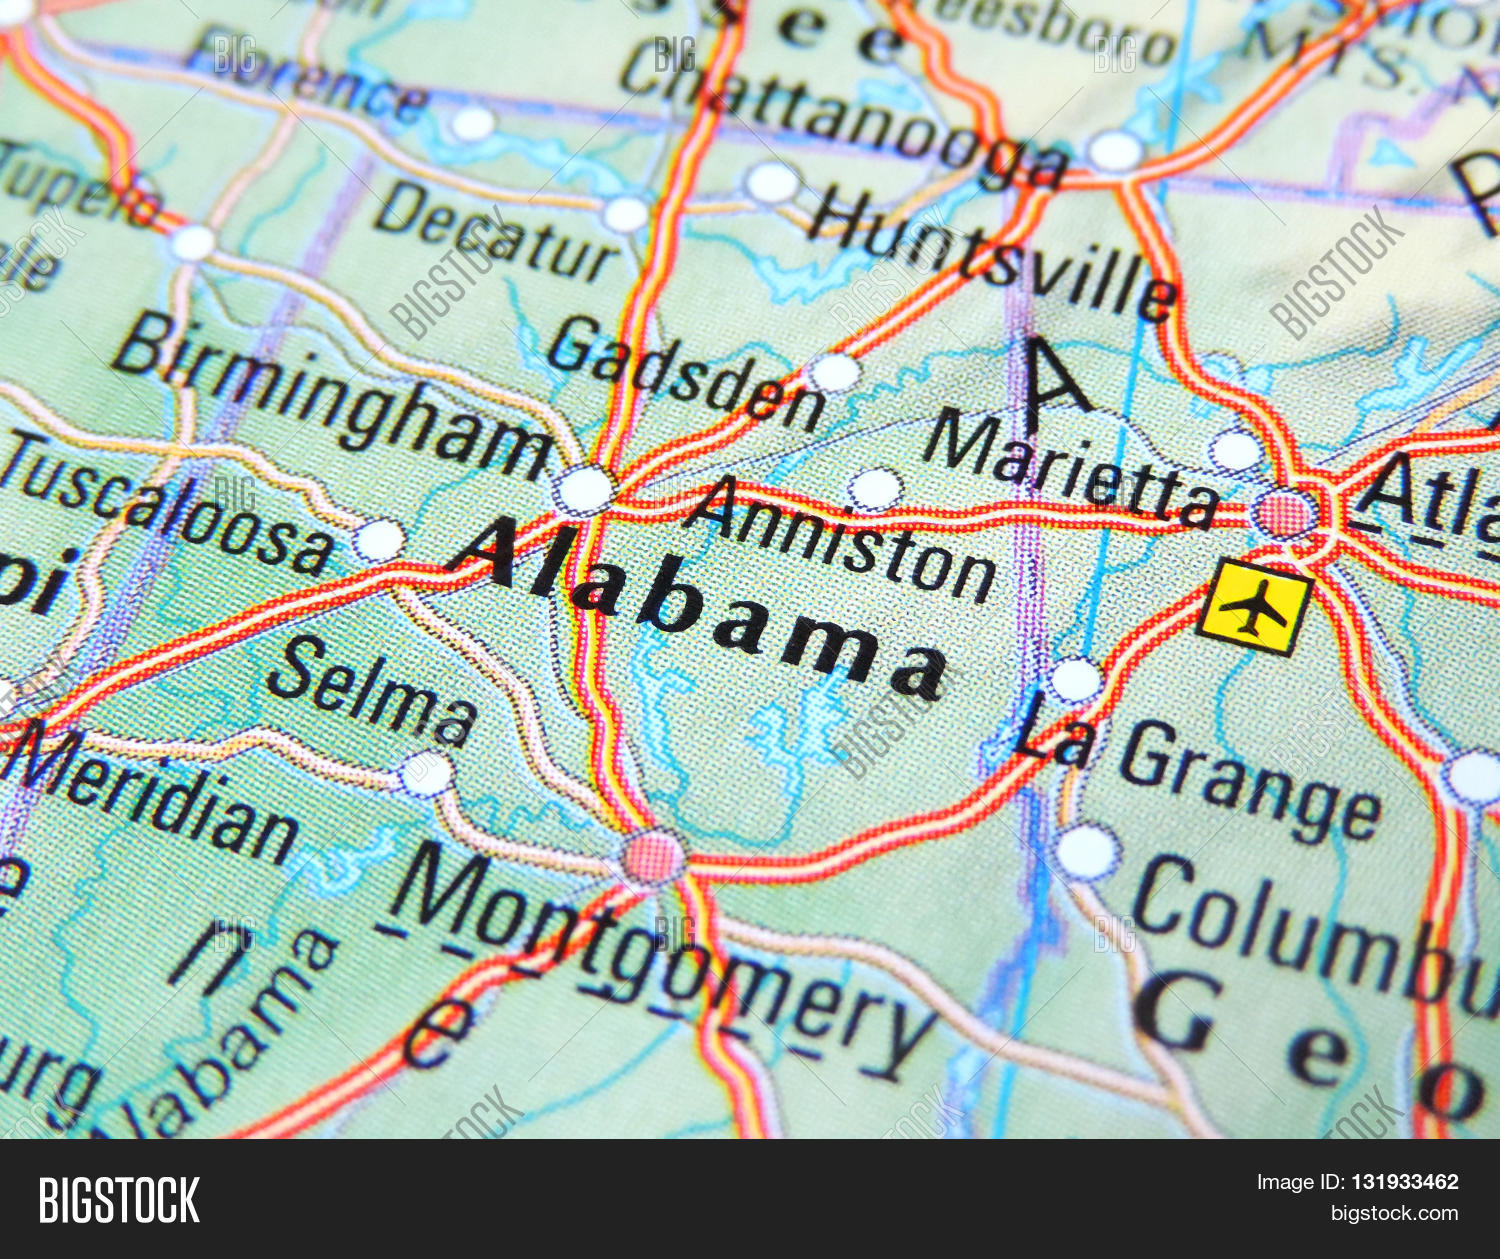 Map Alabama, Stet USA Image & Photo (Free Trial) | Bigstock on map of nevada usa, map of georgia usa, map of st. vincent and the grenadines, map of america usa, map of san antonio usa, map of northeastern usa, map of northwestern usa, map of midwest states usa, map of southern usa, map of the south usa, map of carolinas usa, map delaware usa, map arkansas usa, map of washington dc usa, map of richmond usa, map of mexico usa, map of southeast usa, map of boston usa, colorado map usa, map of pacific northwest usa,